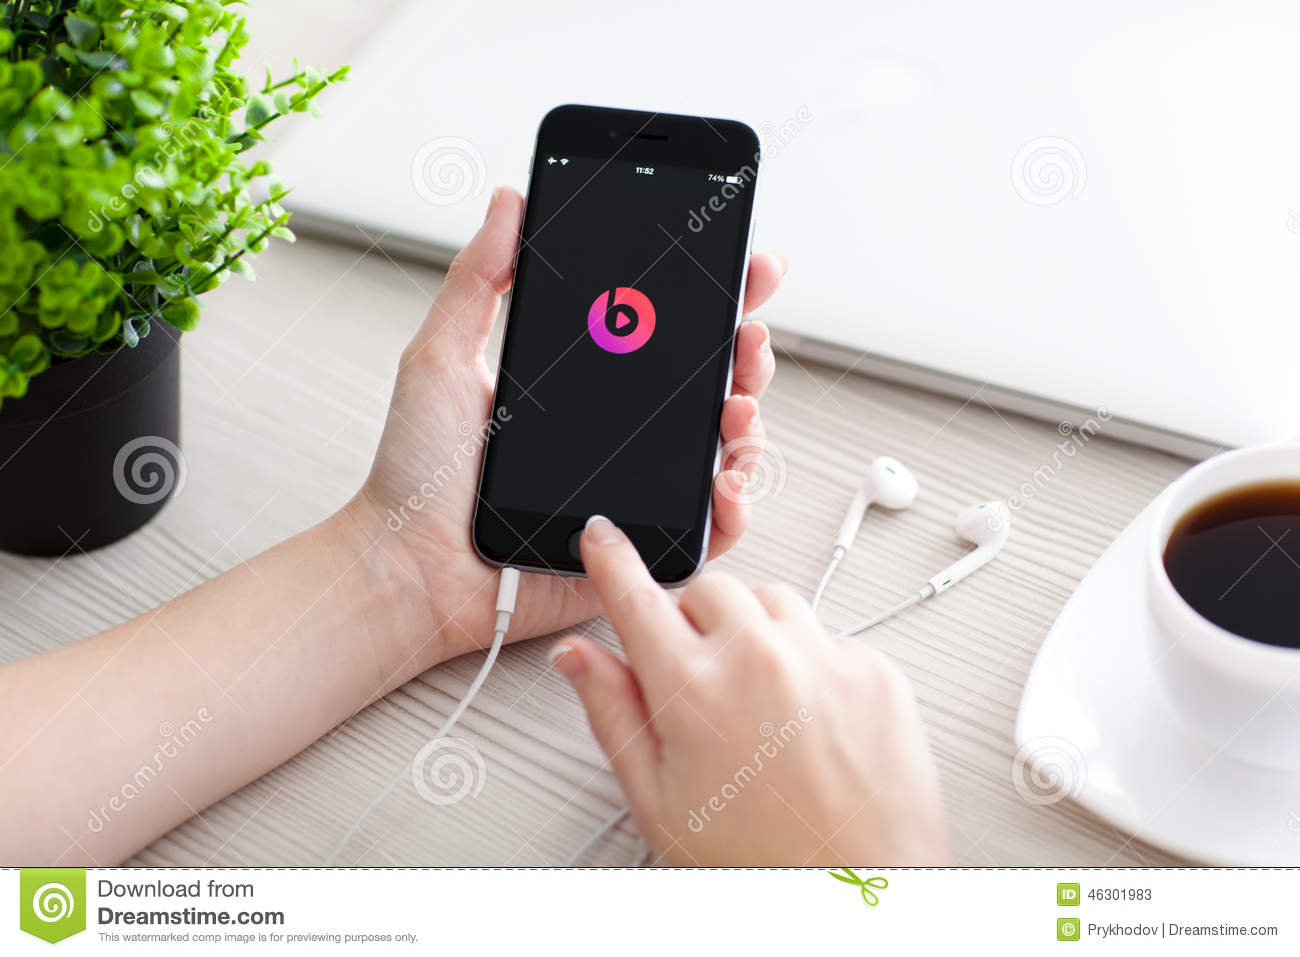 Girl holding iPhone 6 Space Gray with service Beats Music